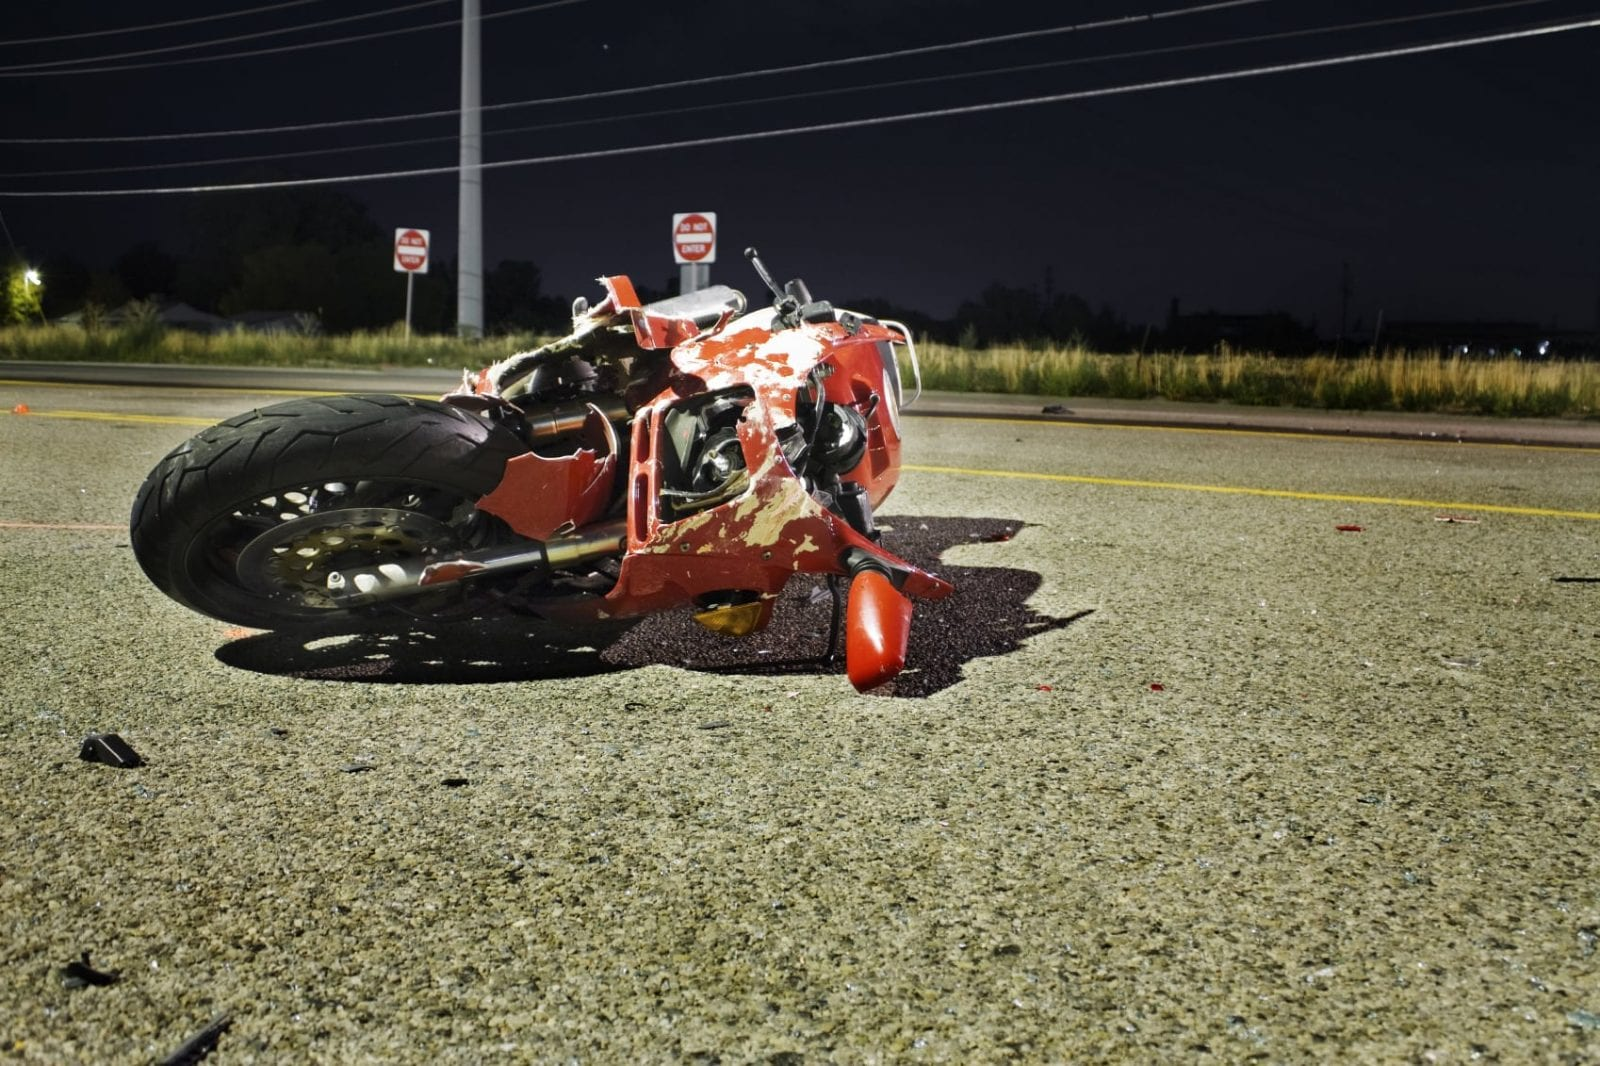 Motorcycle Accident Stock Photo. Odessa Personal Injury Lawyer Discusses Crash Involving Semi And Motorcycle